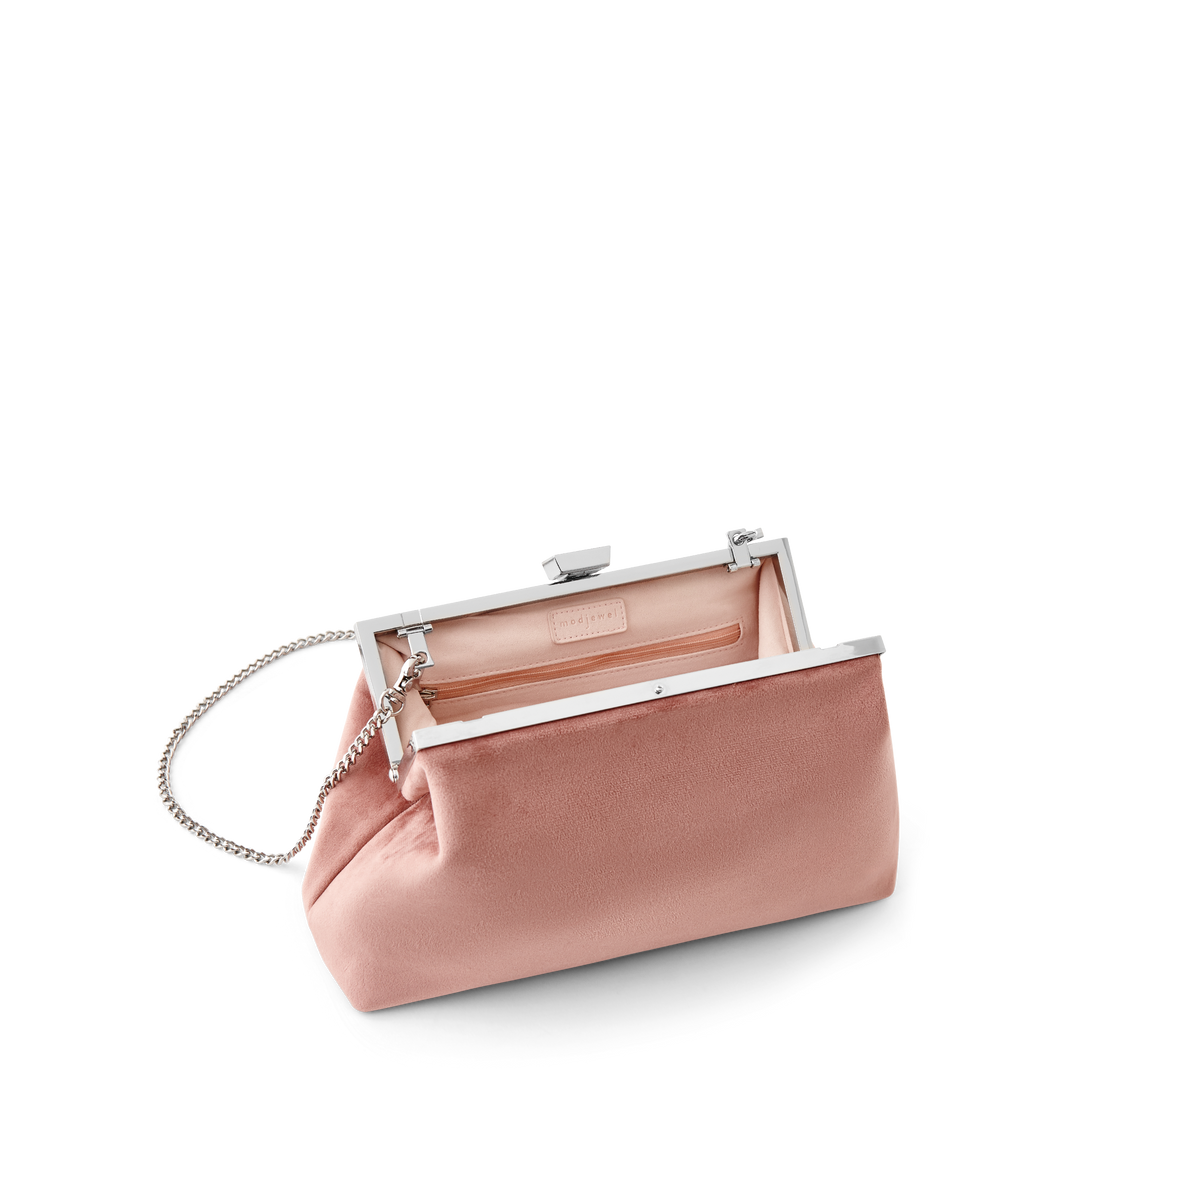 Dusty Rose Velvet Jewel Bag with Silver Chain Strap